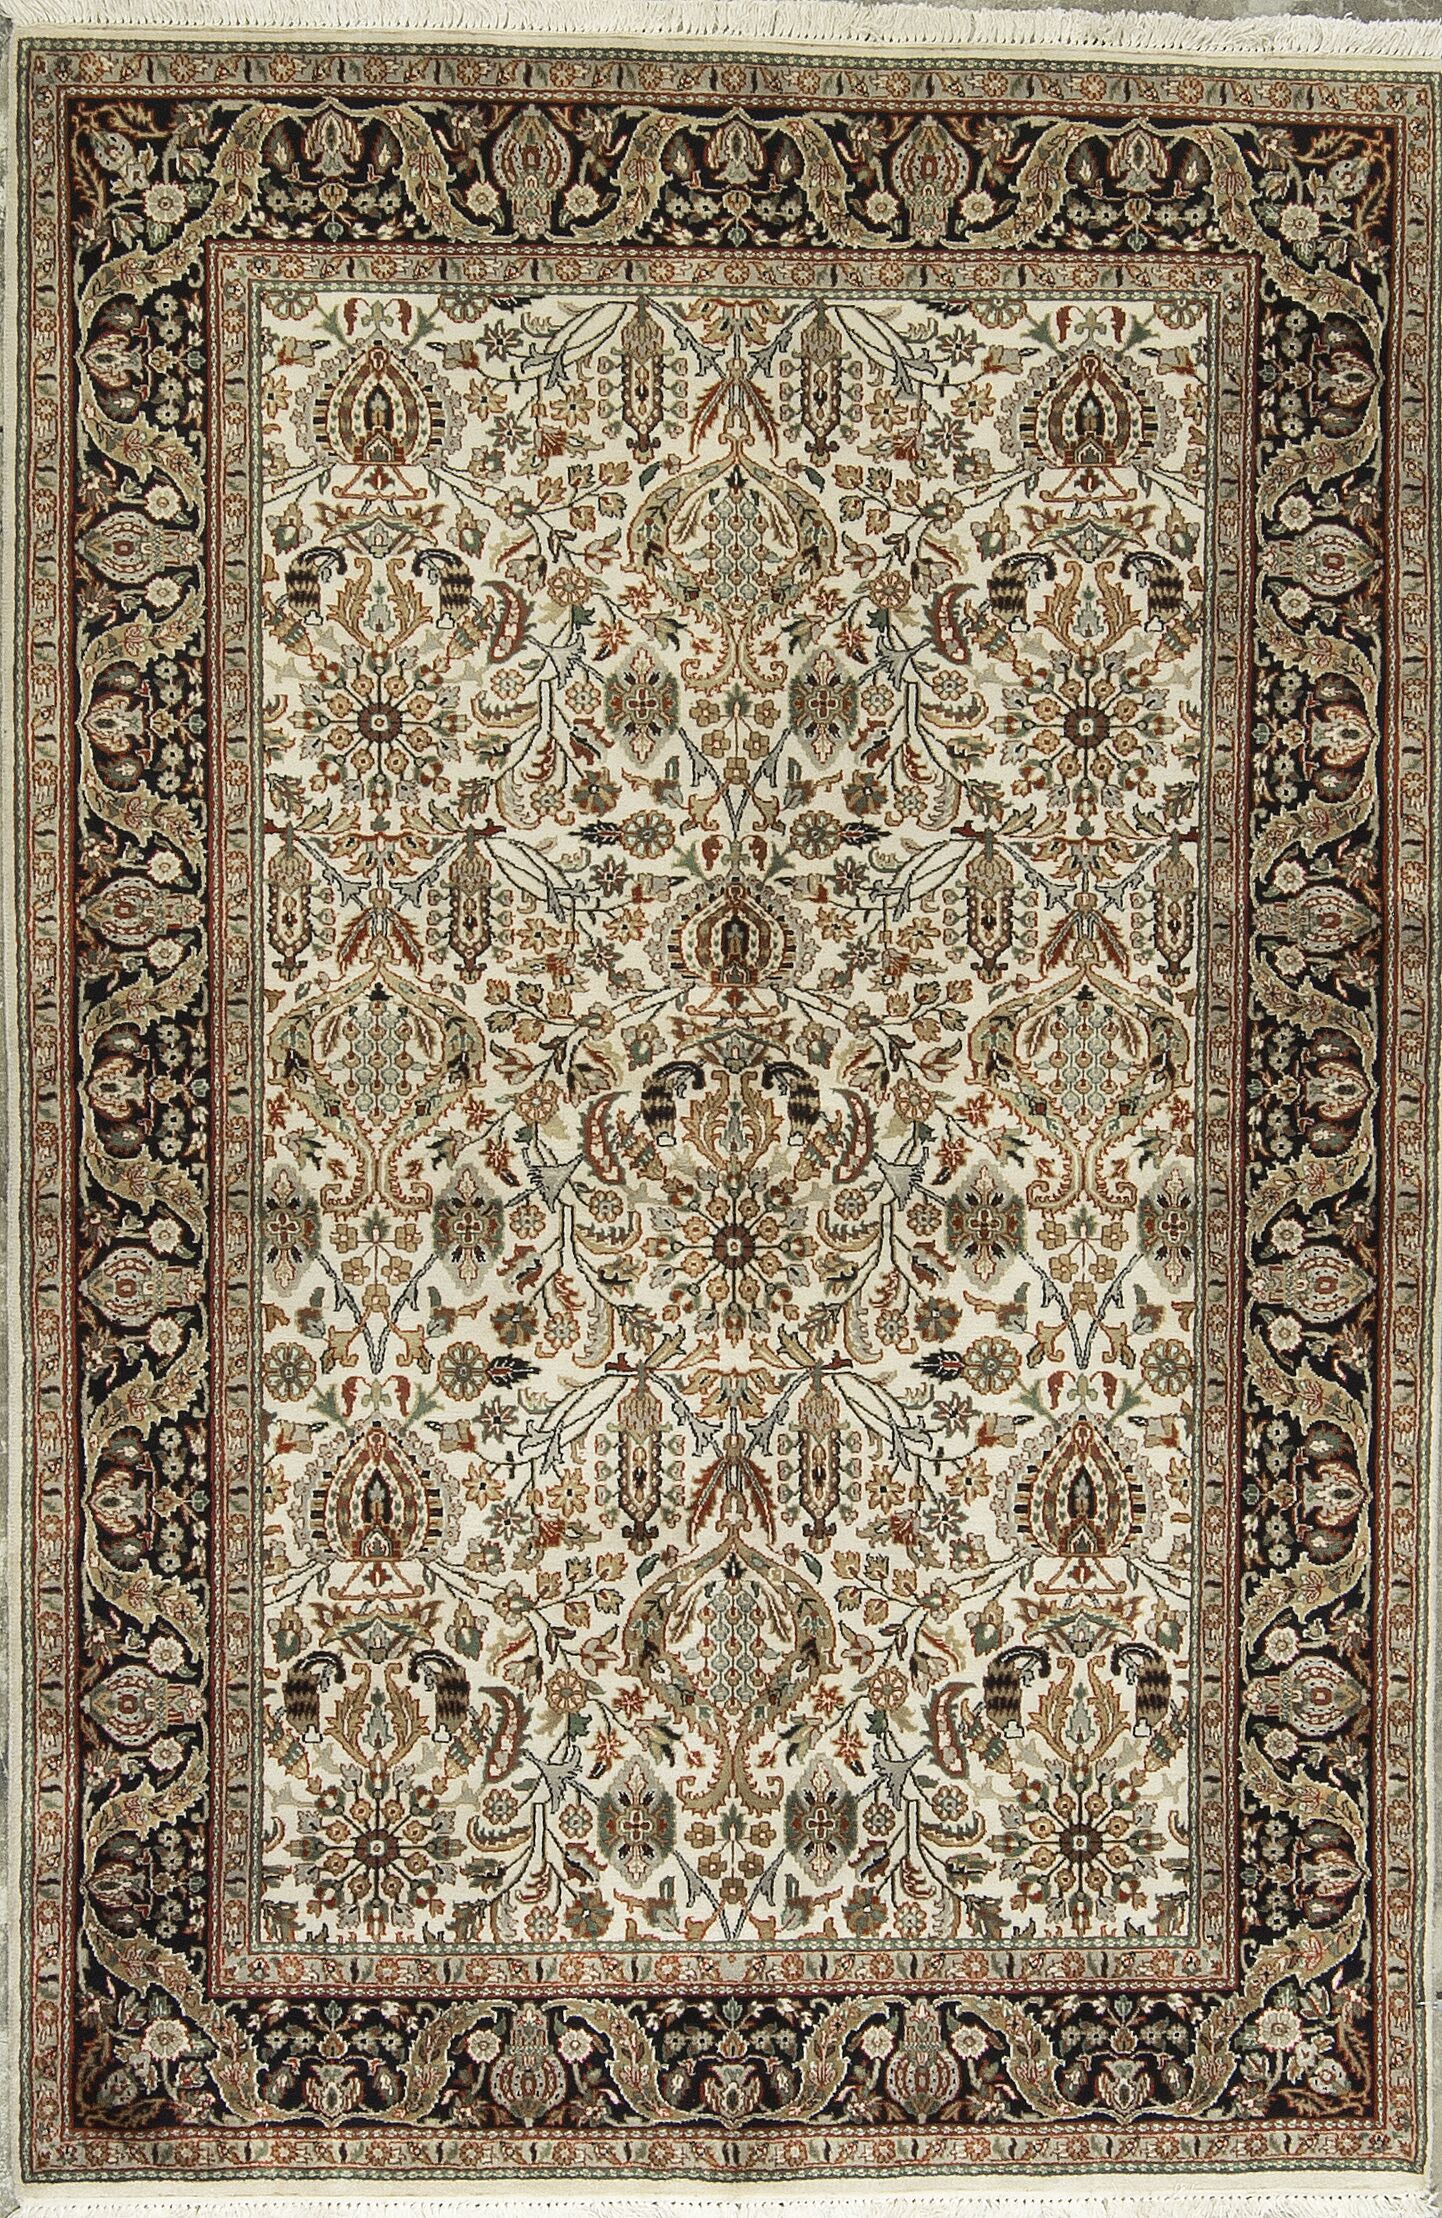 One-of-a-Kind Hand-Knotted Wool Beige/Black Area Rug